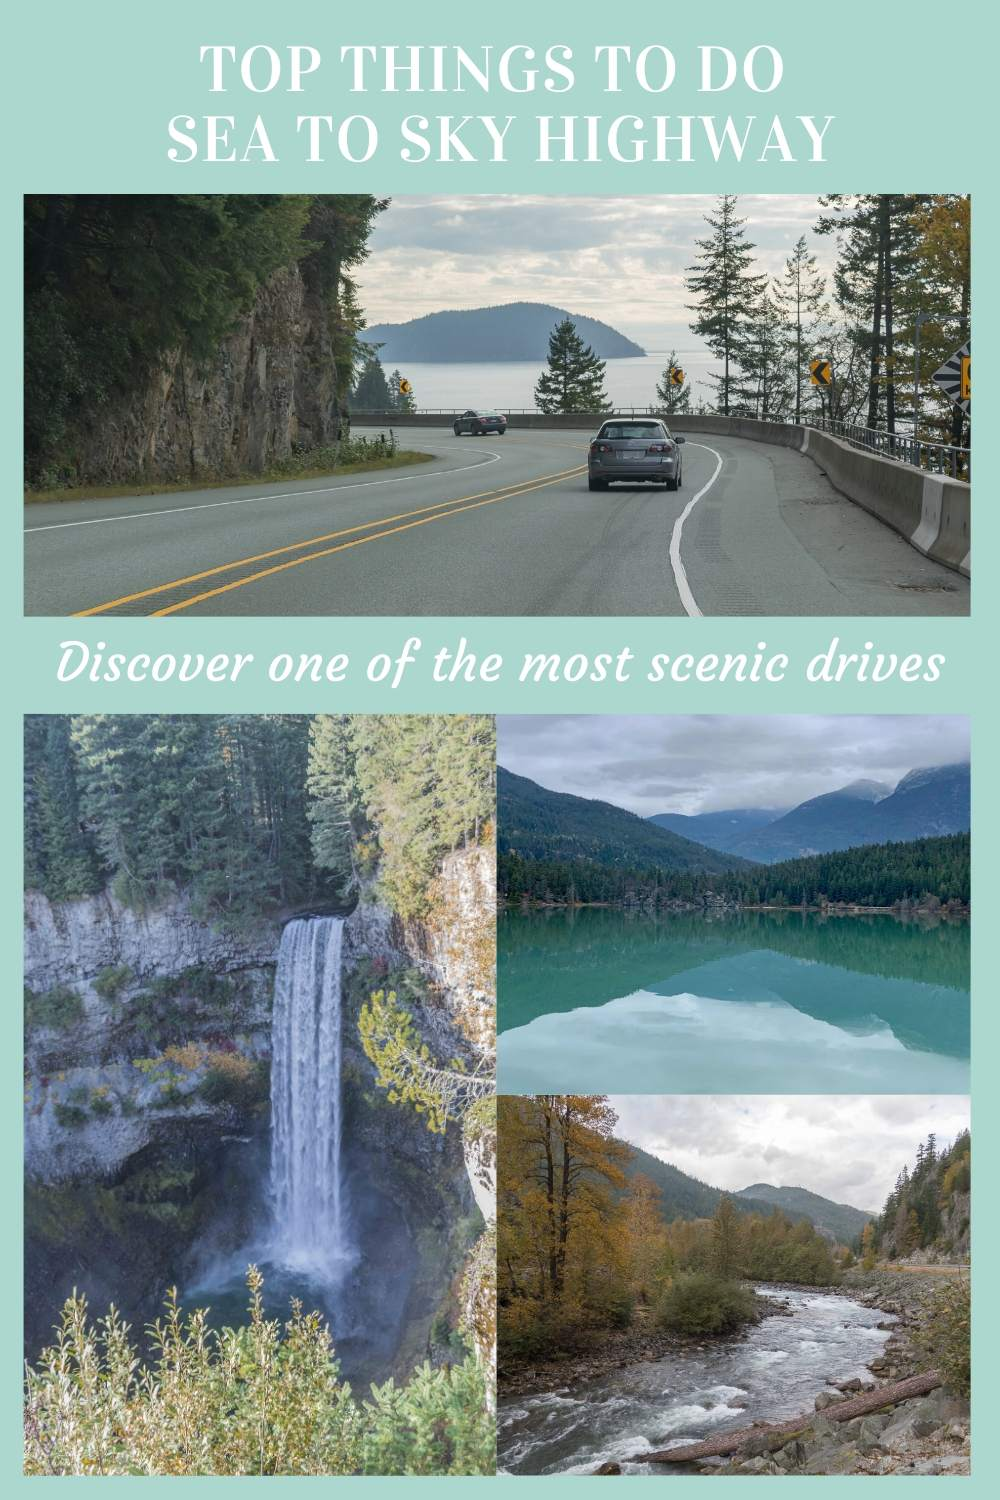 Top things to do Sea to Sky Highway, one of the most scenic drives in North America